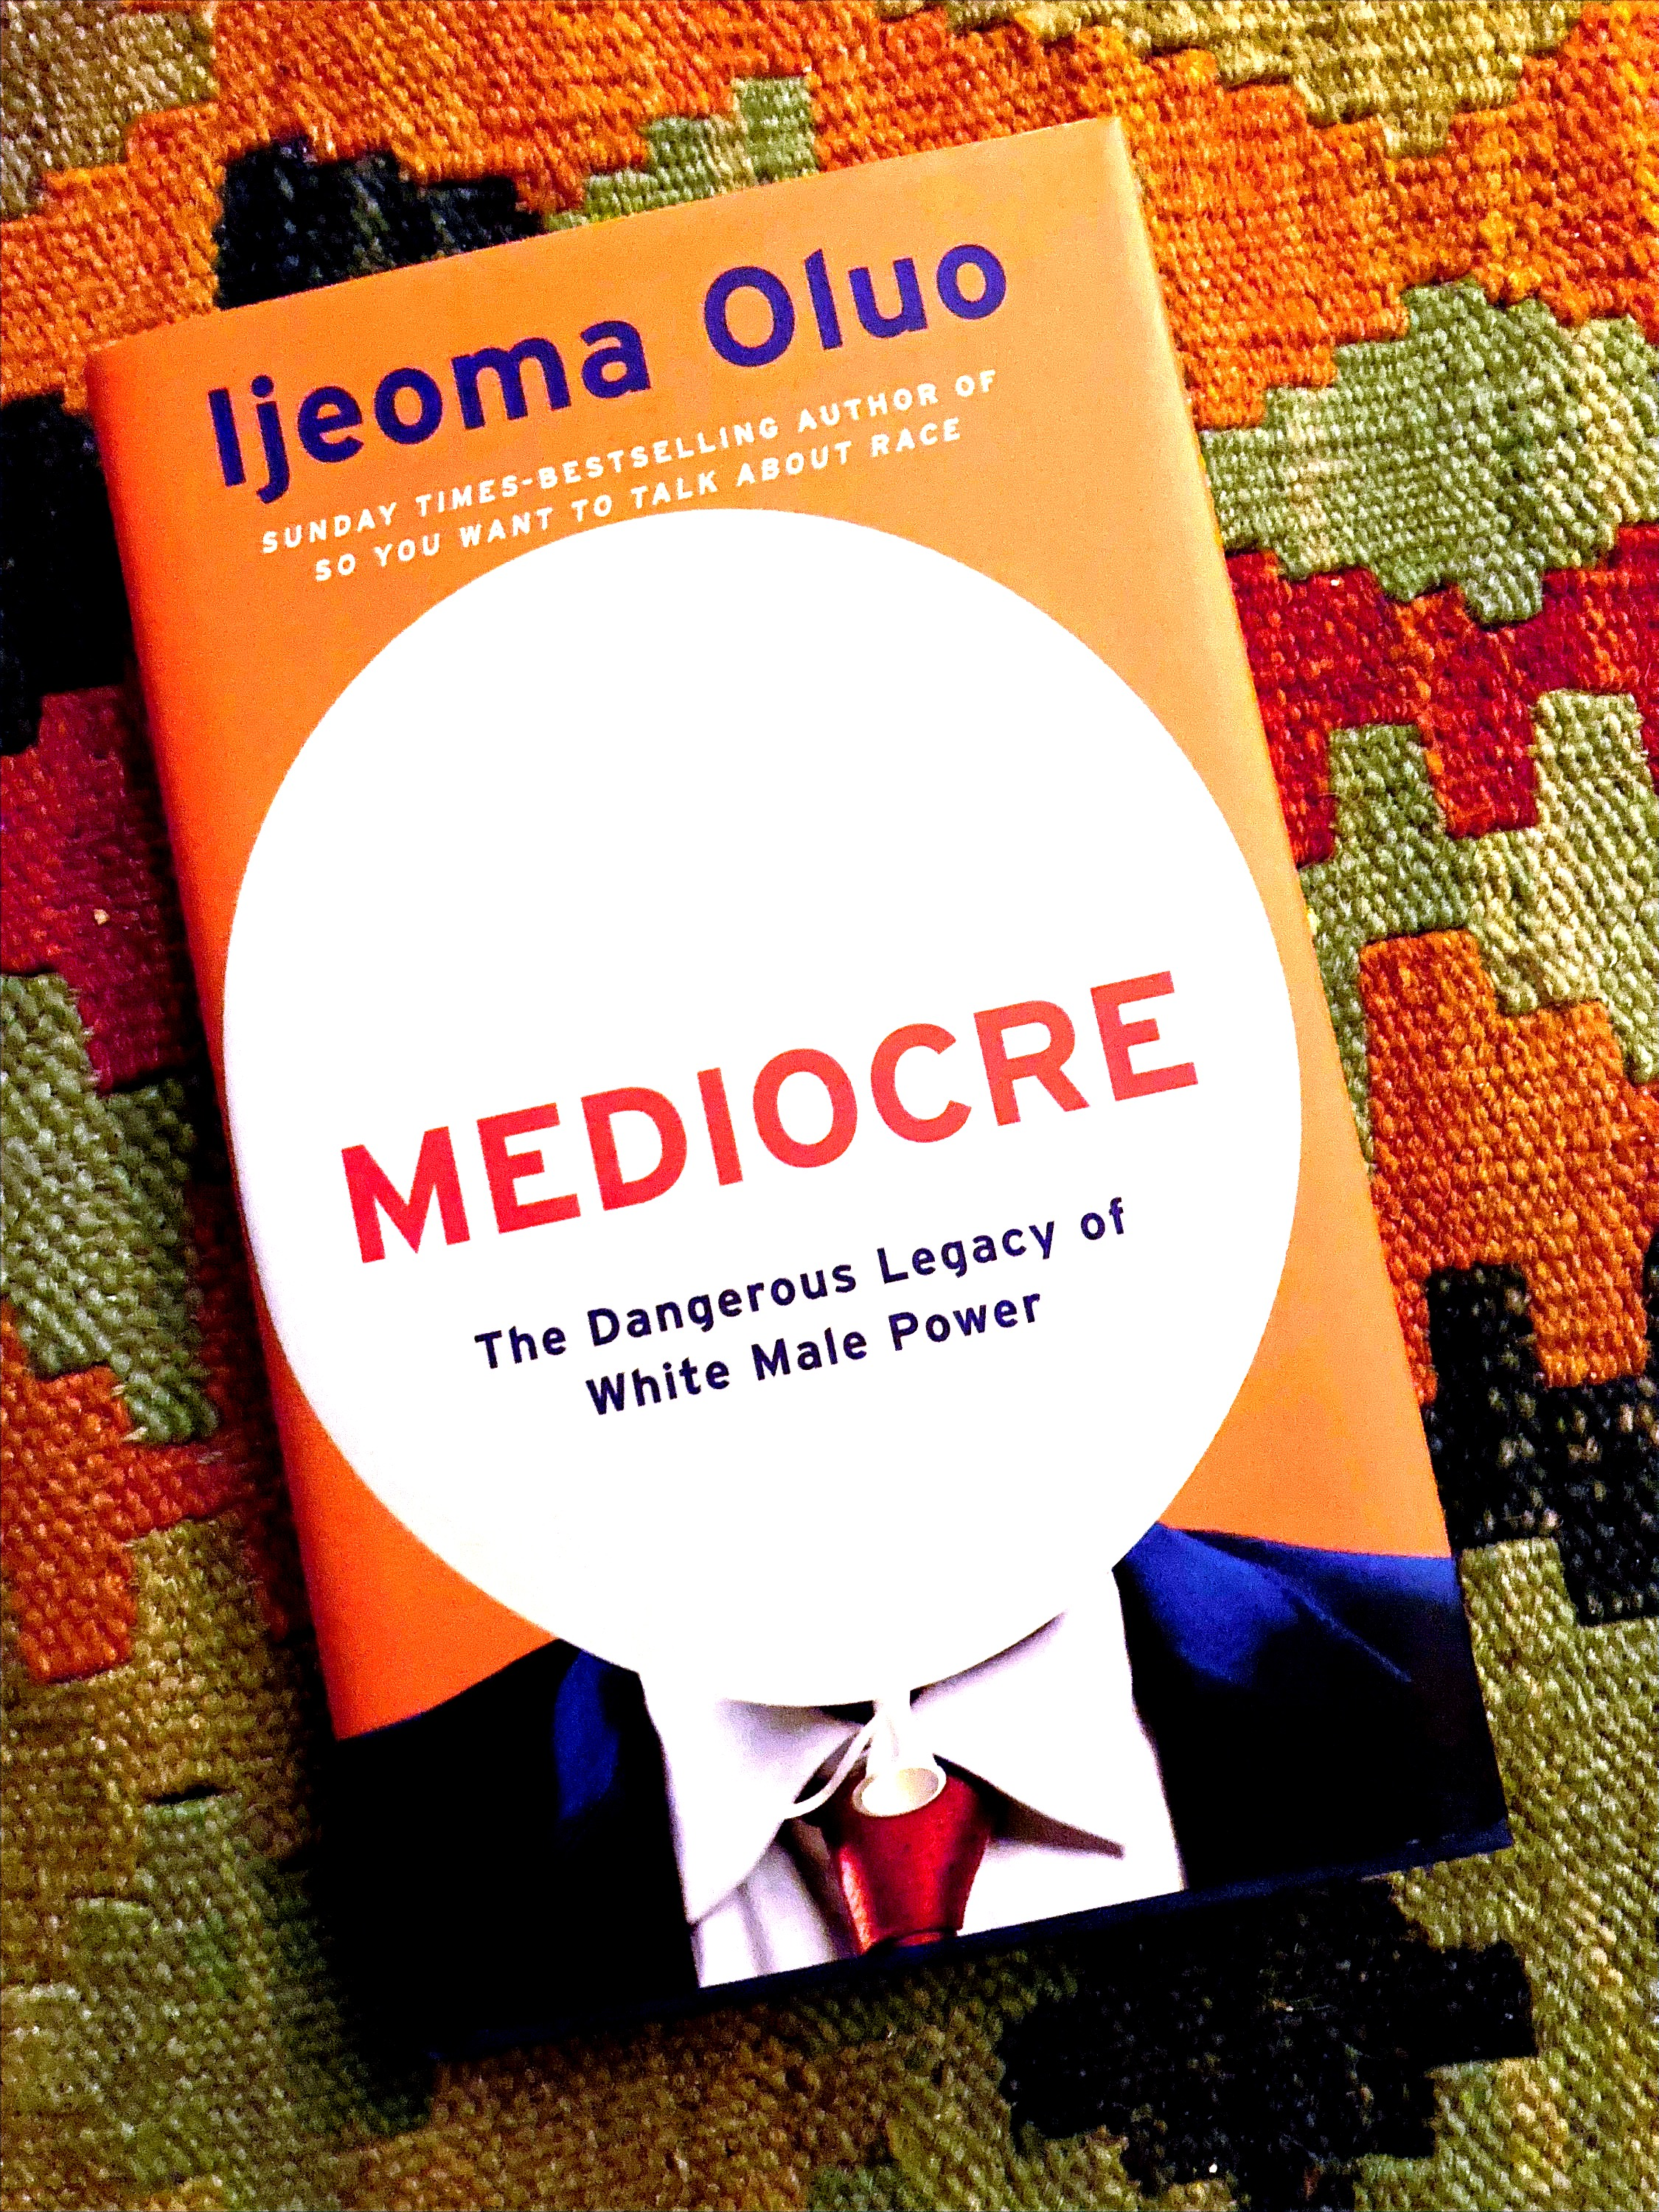 Mediocre: The Dangerous Legacy of White Power 16.99